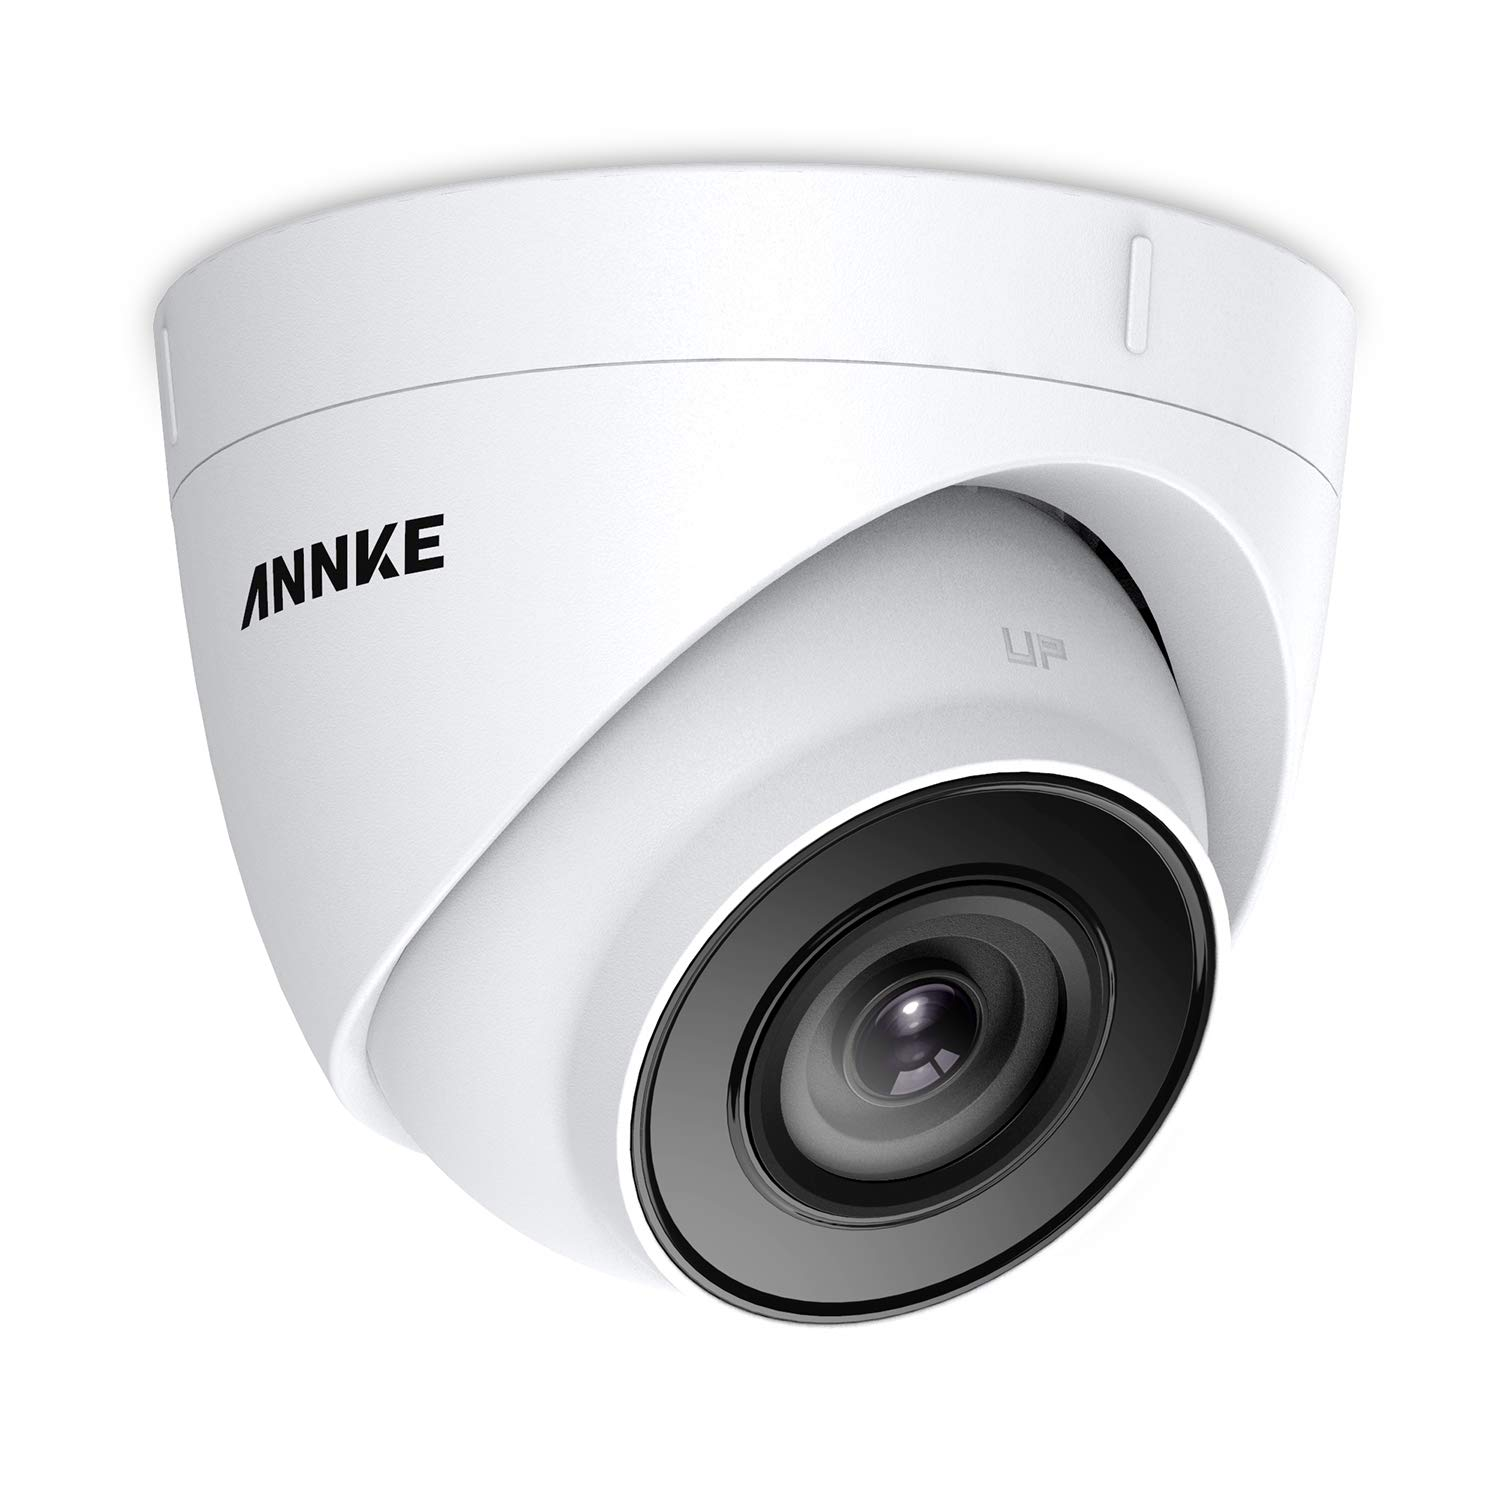 ANNKE 5MP PoE Security Camera 2560×1920 Super HD Dome IP Cam, 100ft EXIR Night Vision, H.265 Video Compression, Onvif Compliant, IP67 Weatherproof for Outdoor Indoor